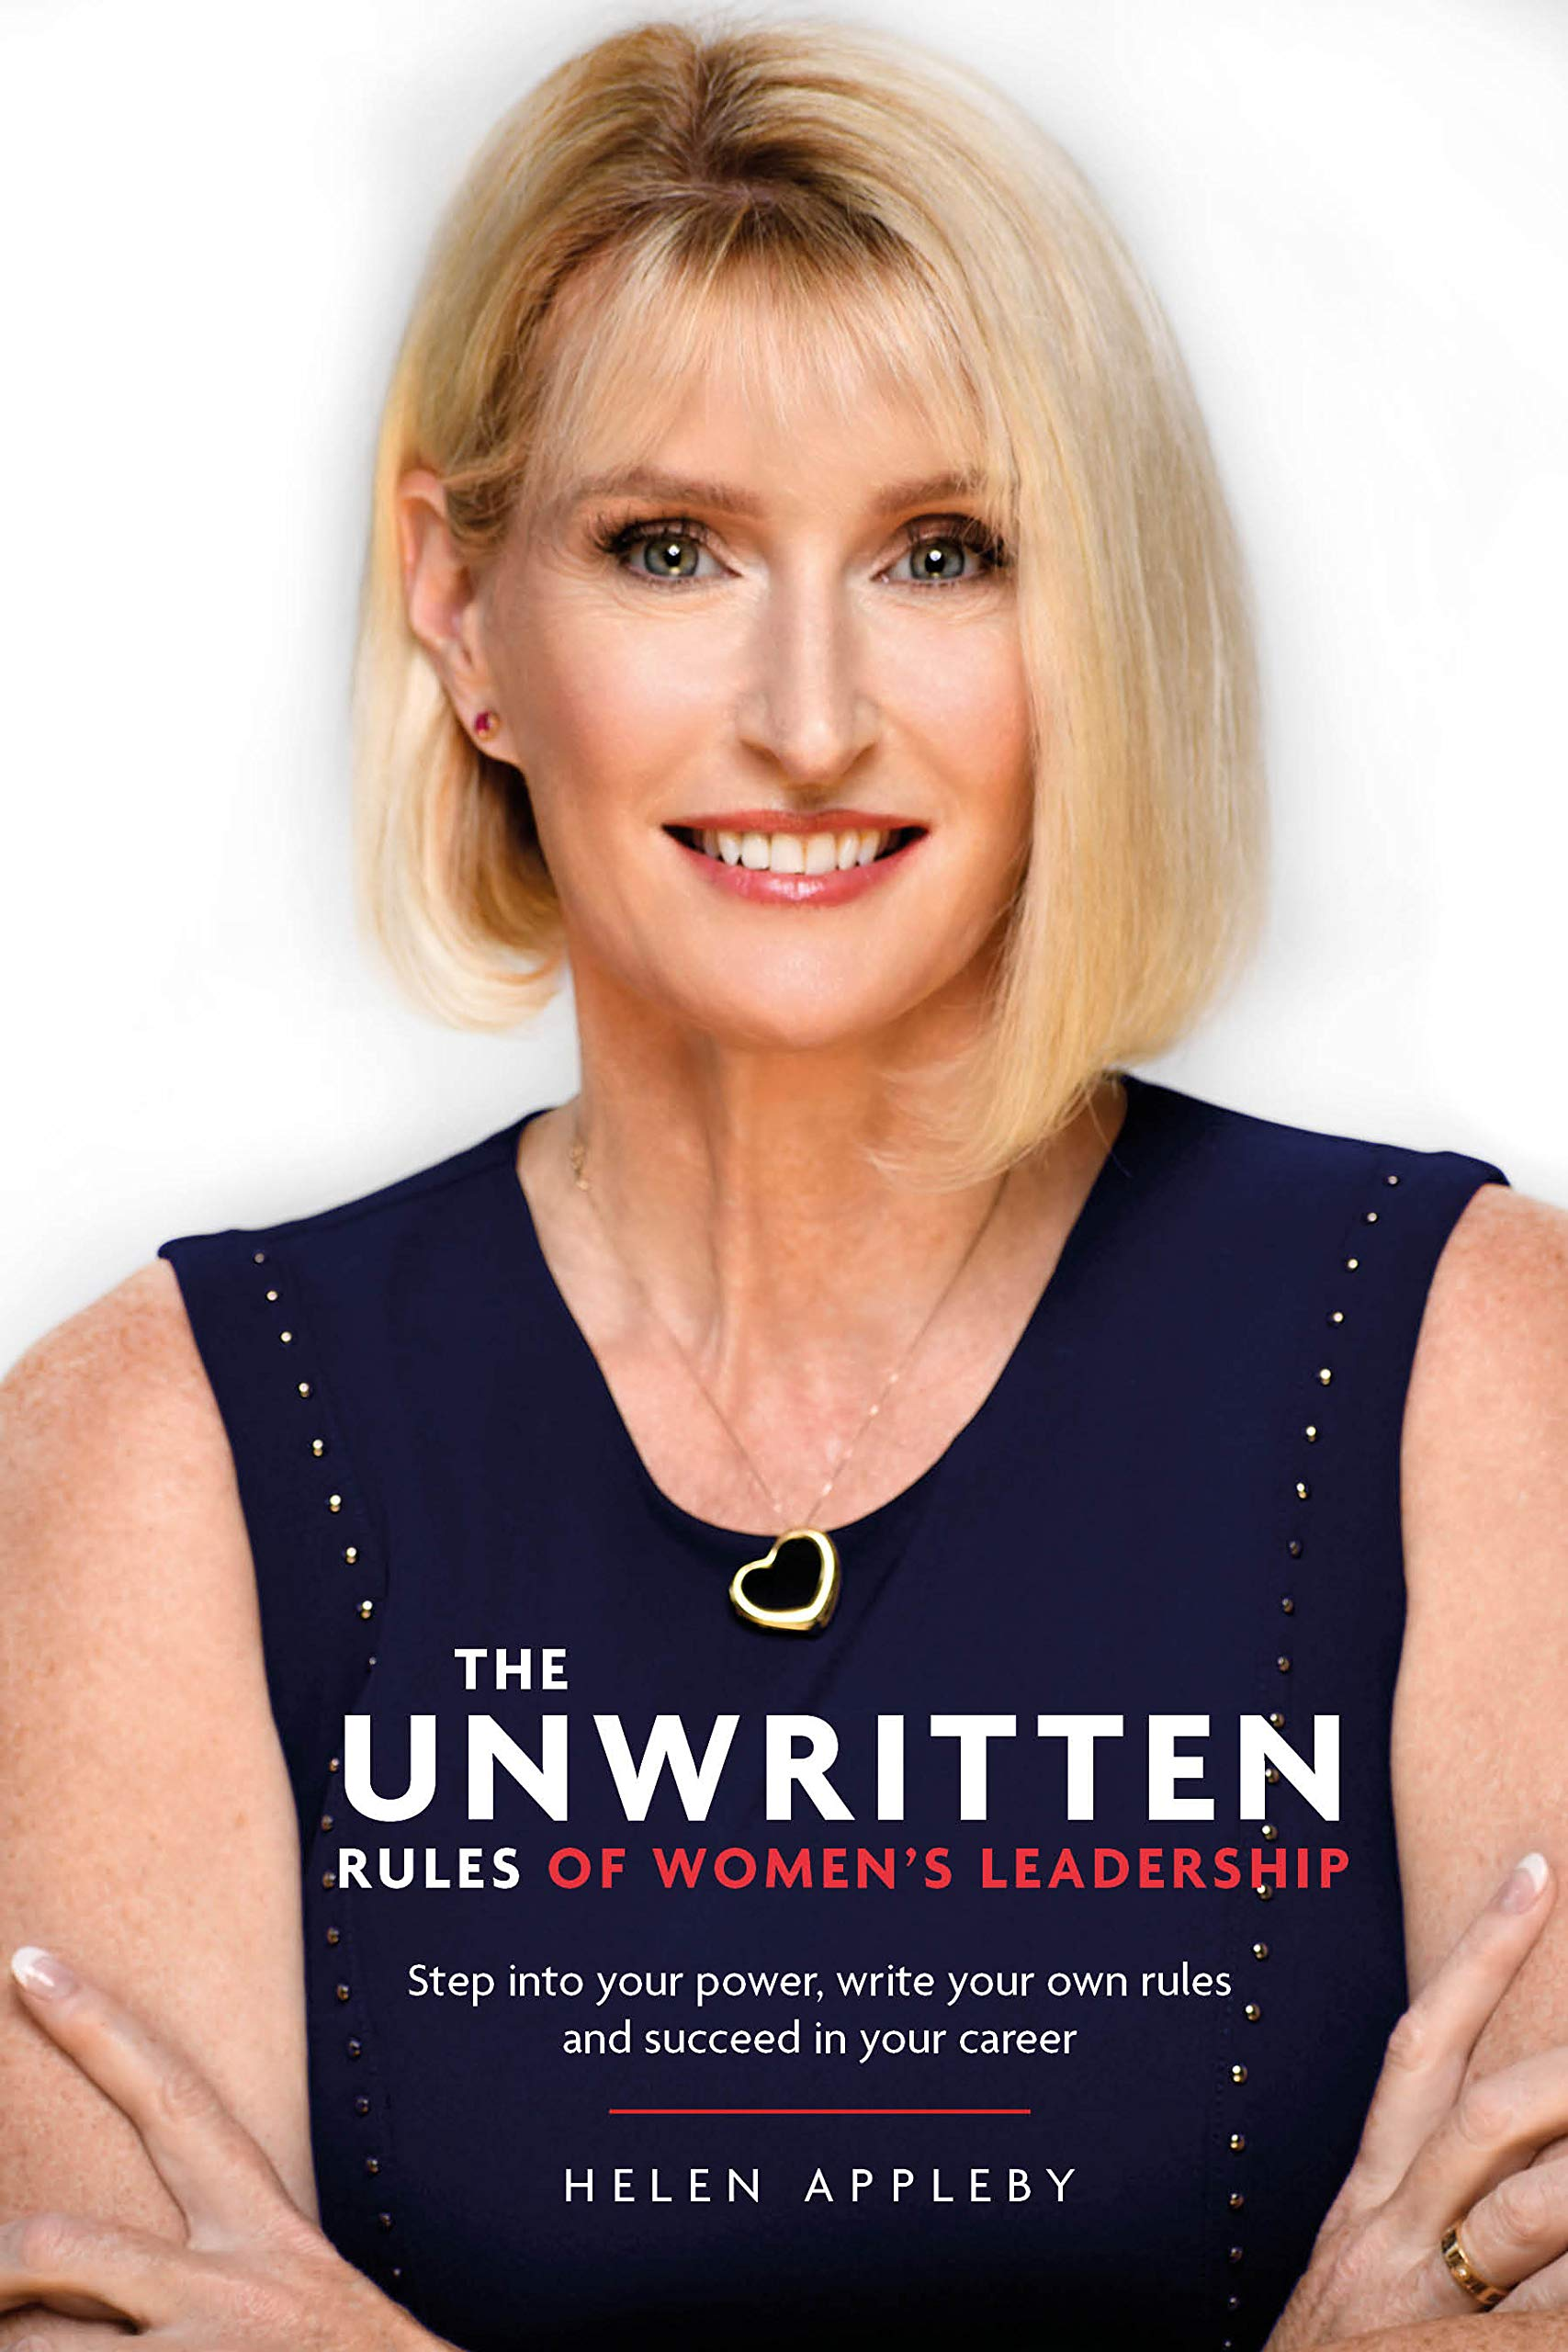 The Unwritten Rules of Women's Leadership: Step into your power, write your own rules and succeed in your career